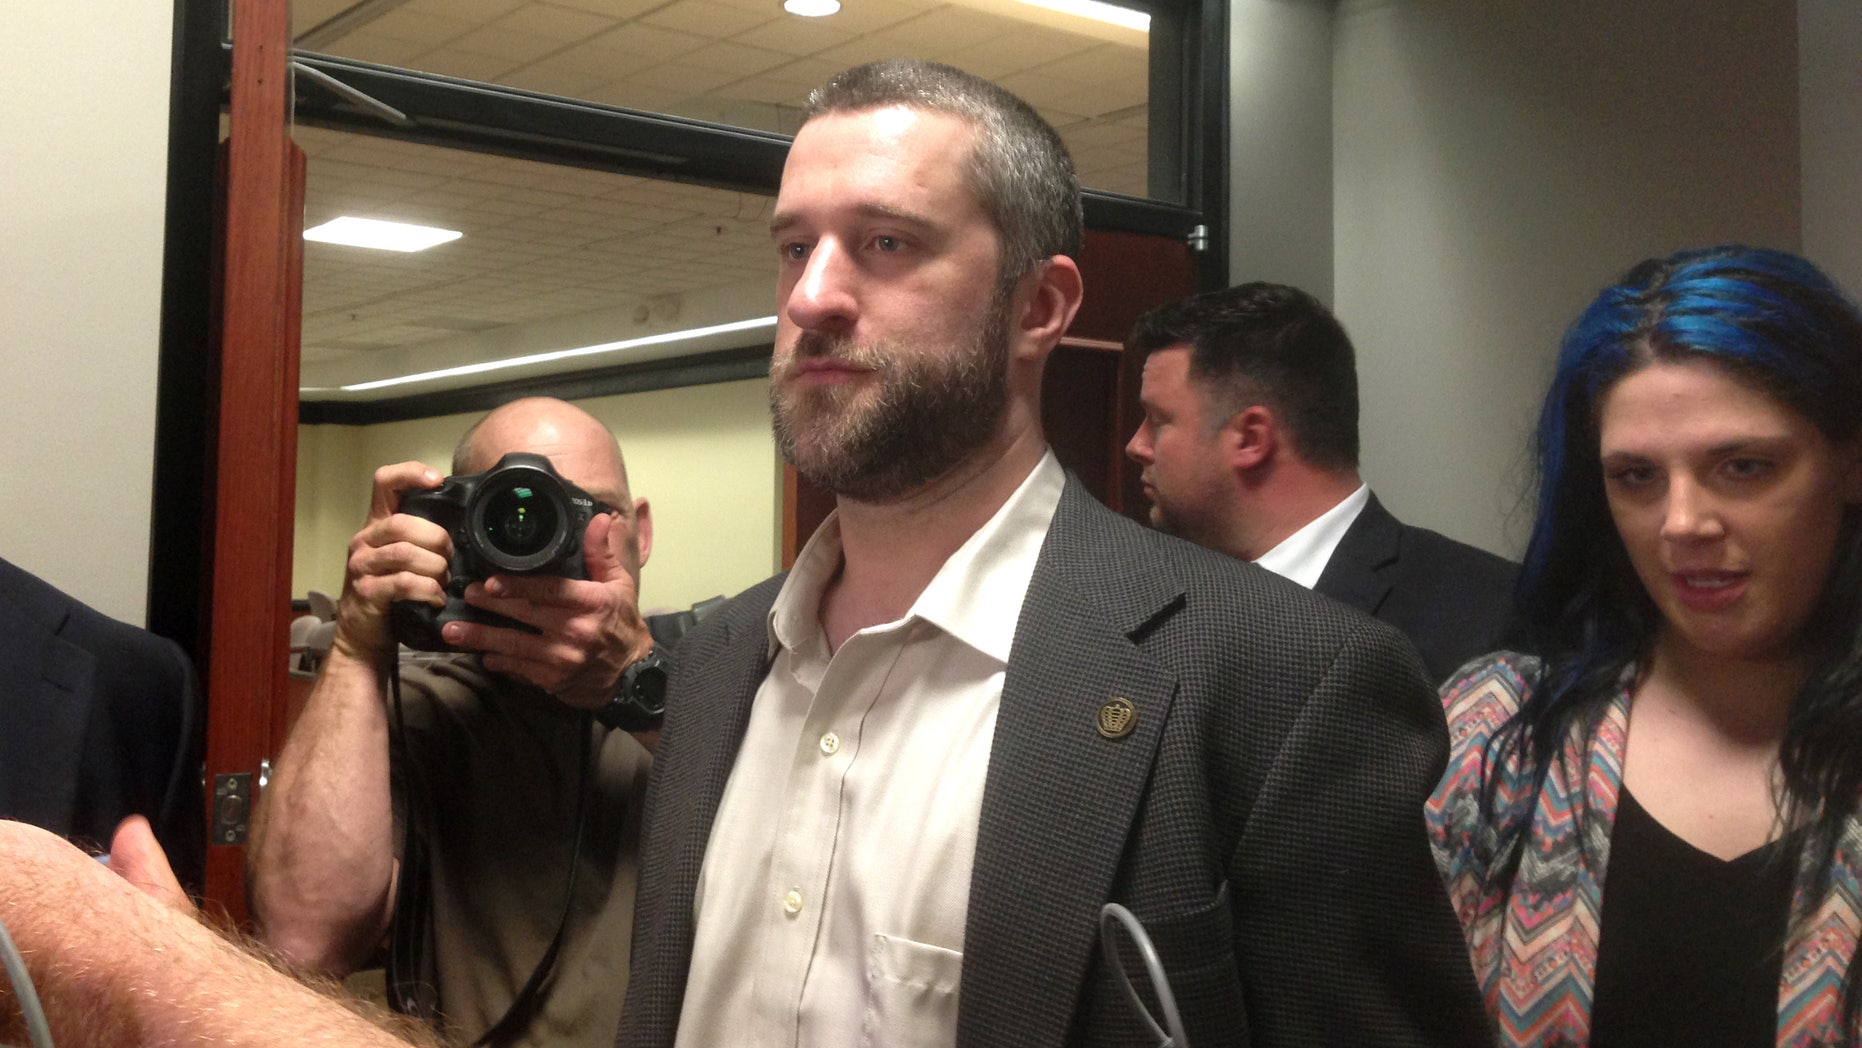 May 29, 2015.  Dustin Diamond, center, leaves court in Port Washington, Wisc., after being convicted of two misdemeanors stemming from a barroom fight on Christmas Day 2014.